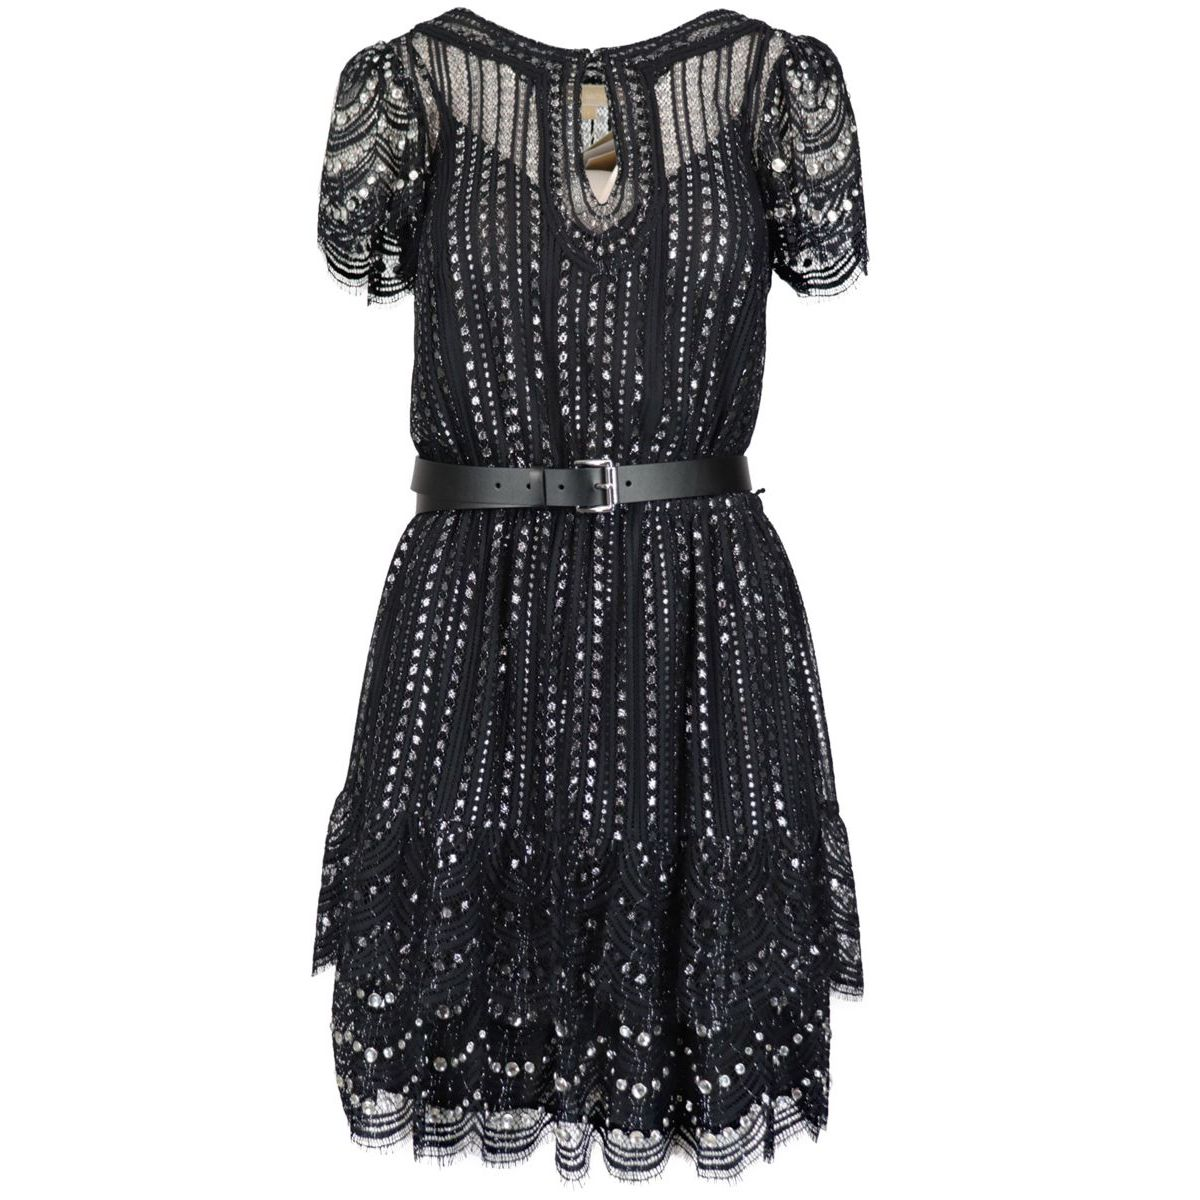 Lace dress embroidered with metallic yarns and crystals Black / silver Michael Kors